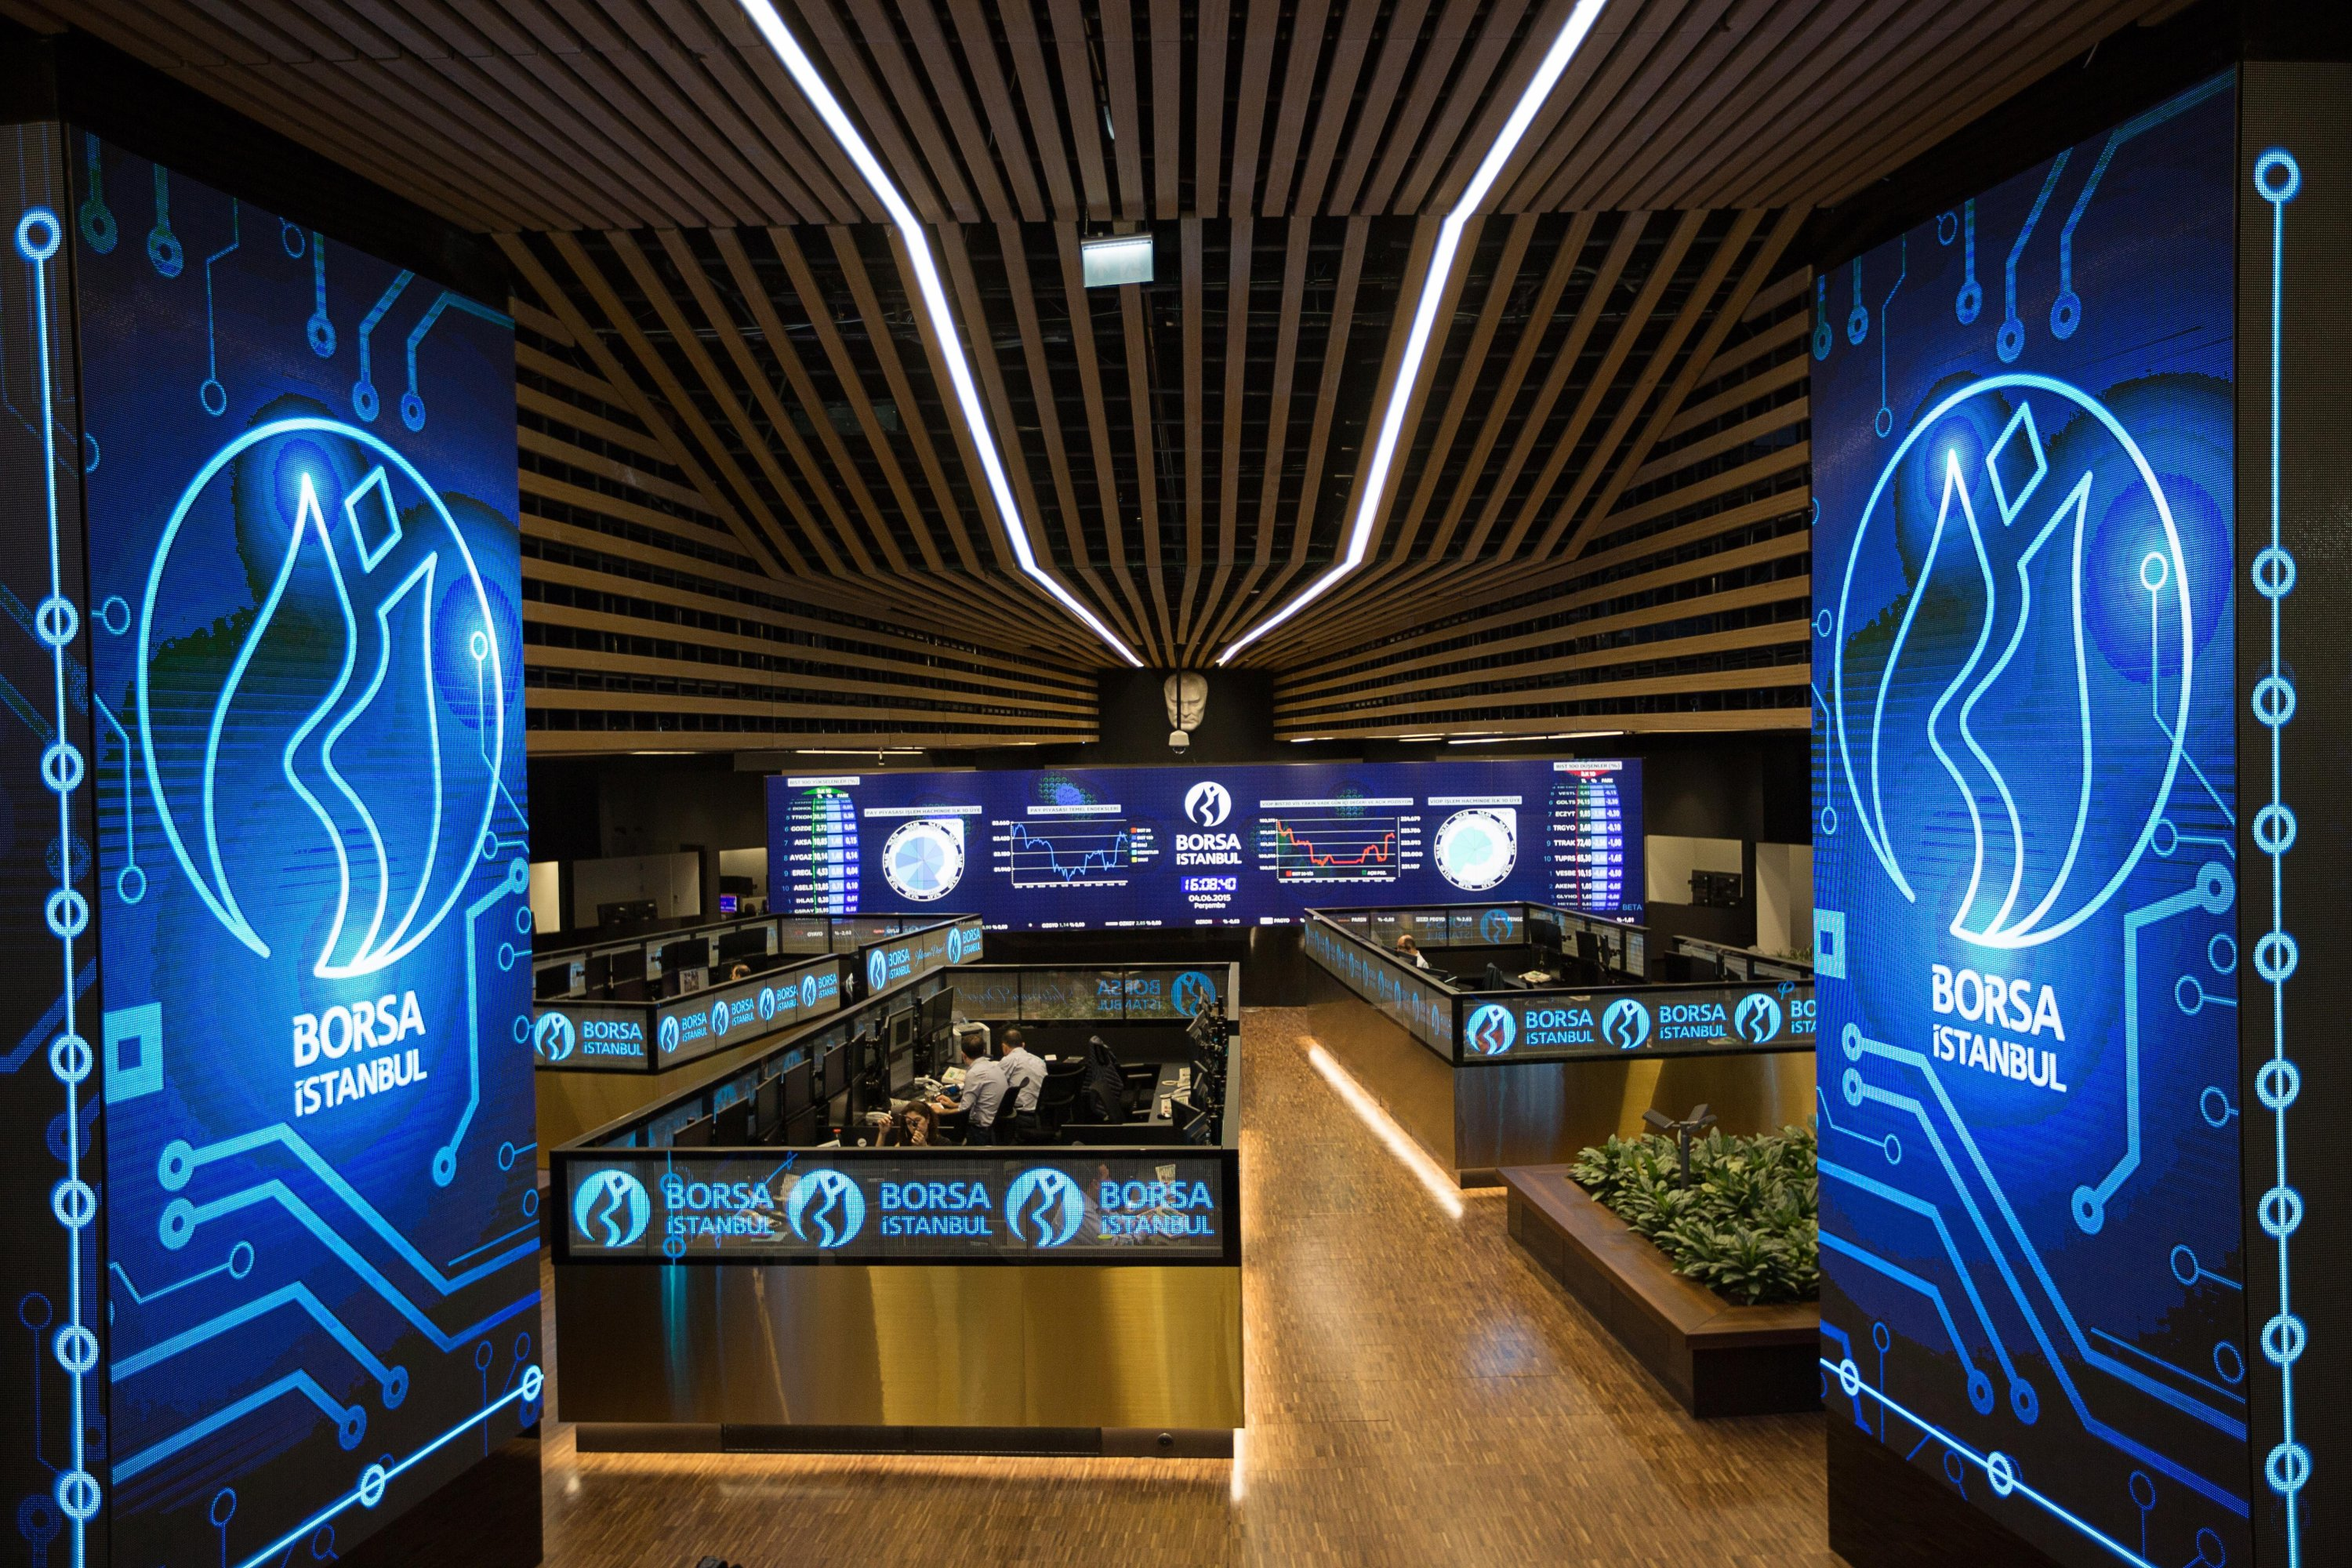 Istanbul's BIST index up 1,453 points at open after Hagia Sophia decision thumbnail